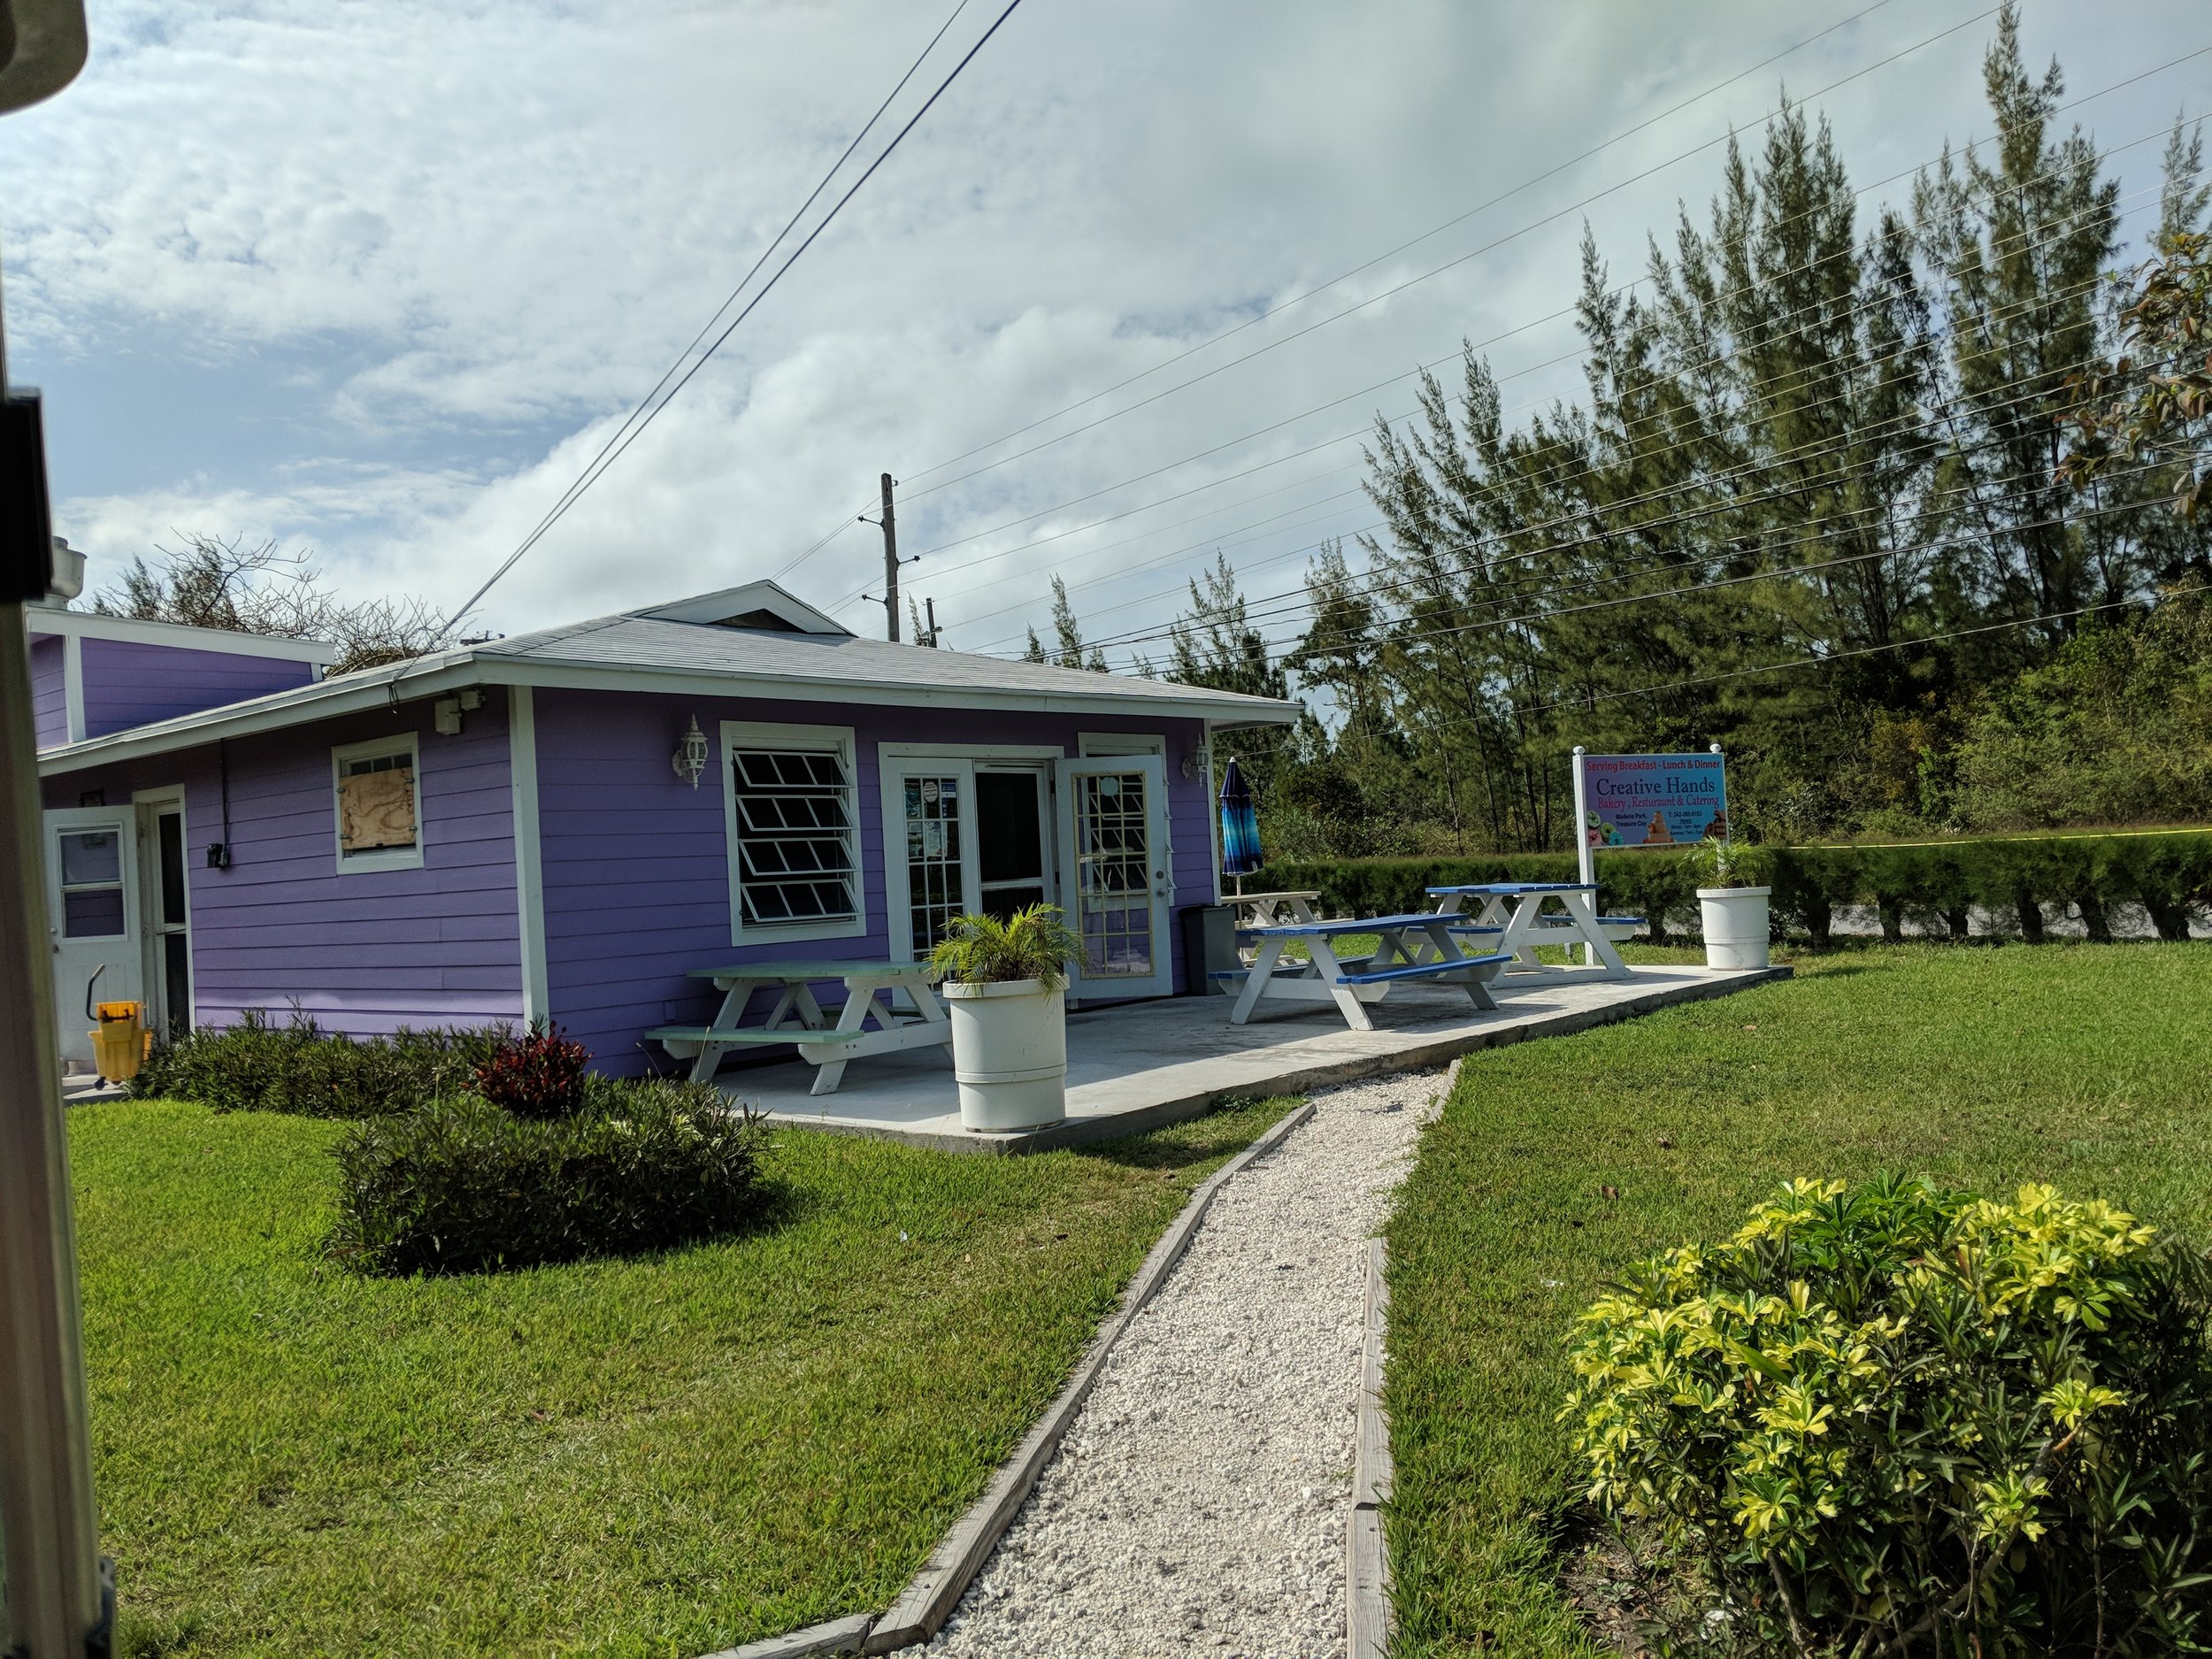 Creative Hands bakery just outside Treasure Cay.